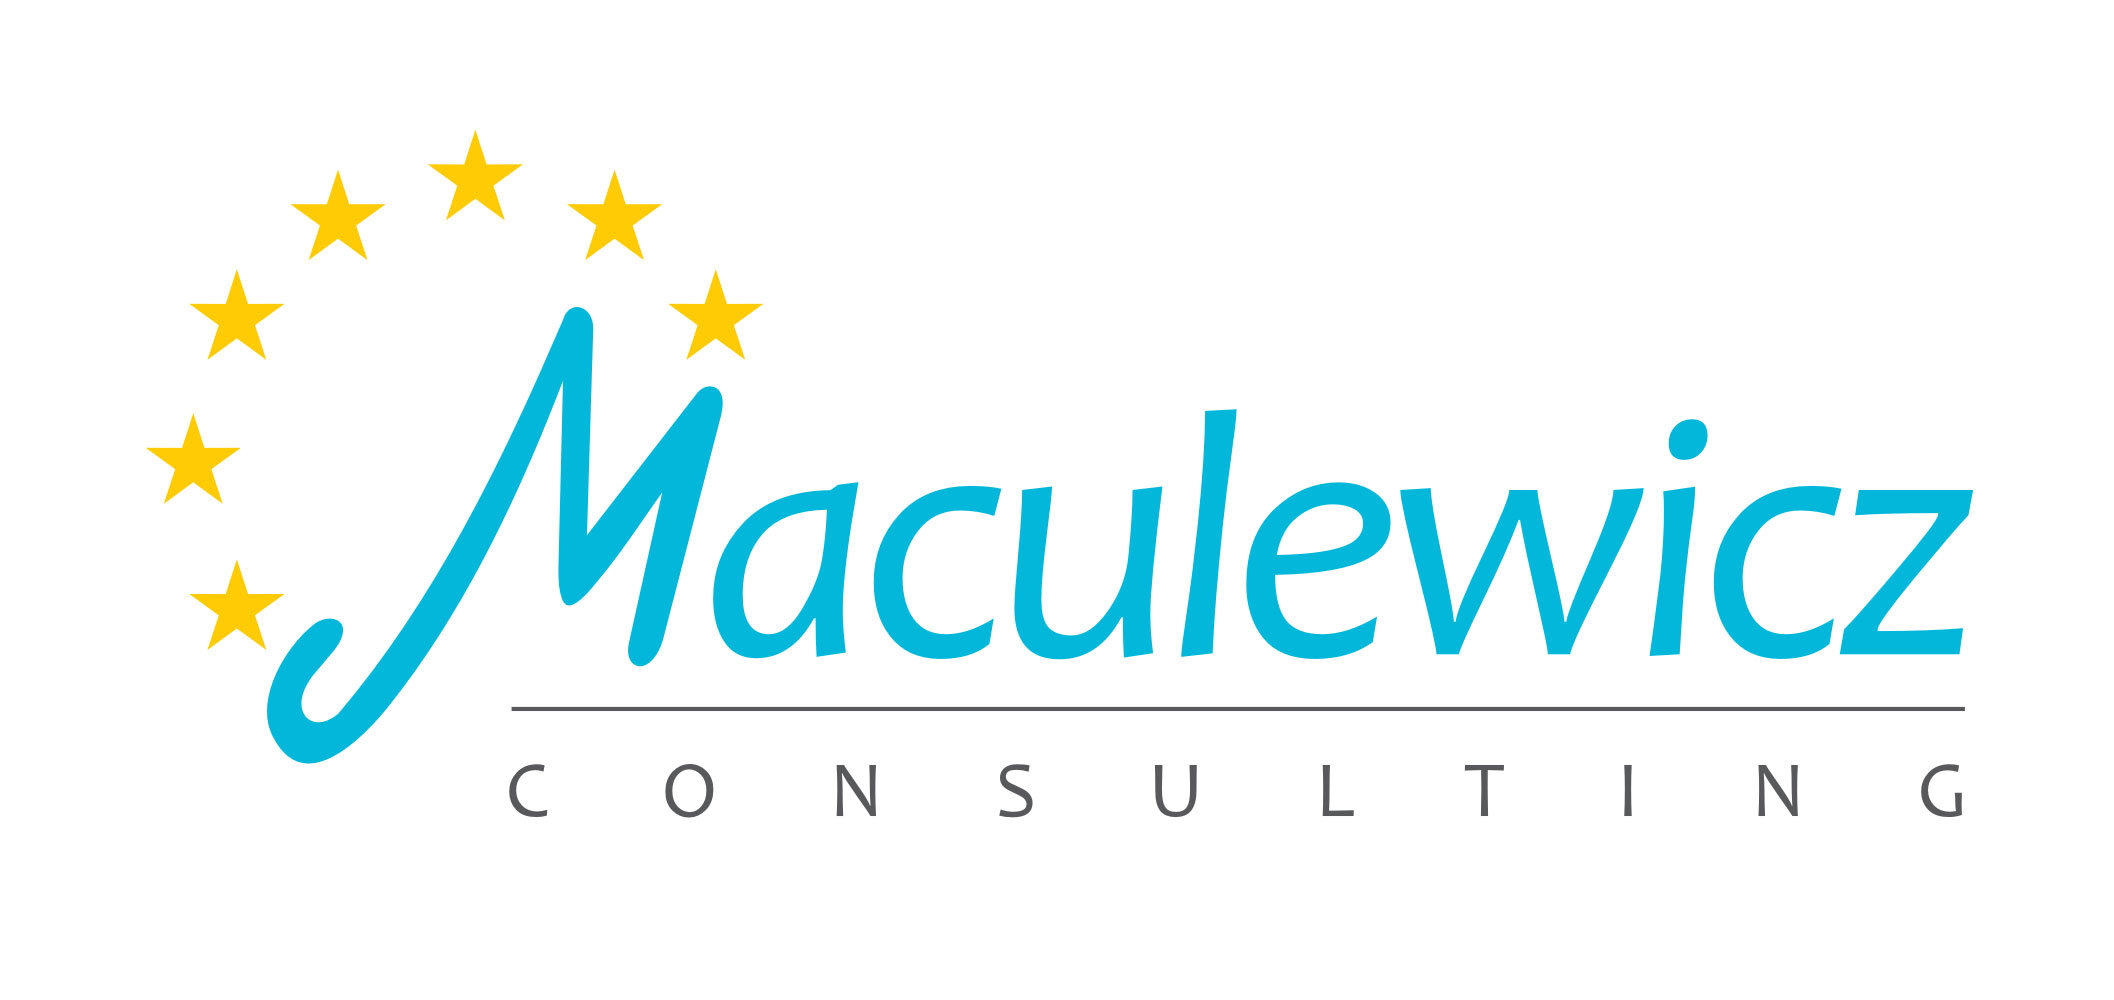 Maculewicz Consulting Sp. z o.o.